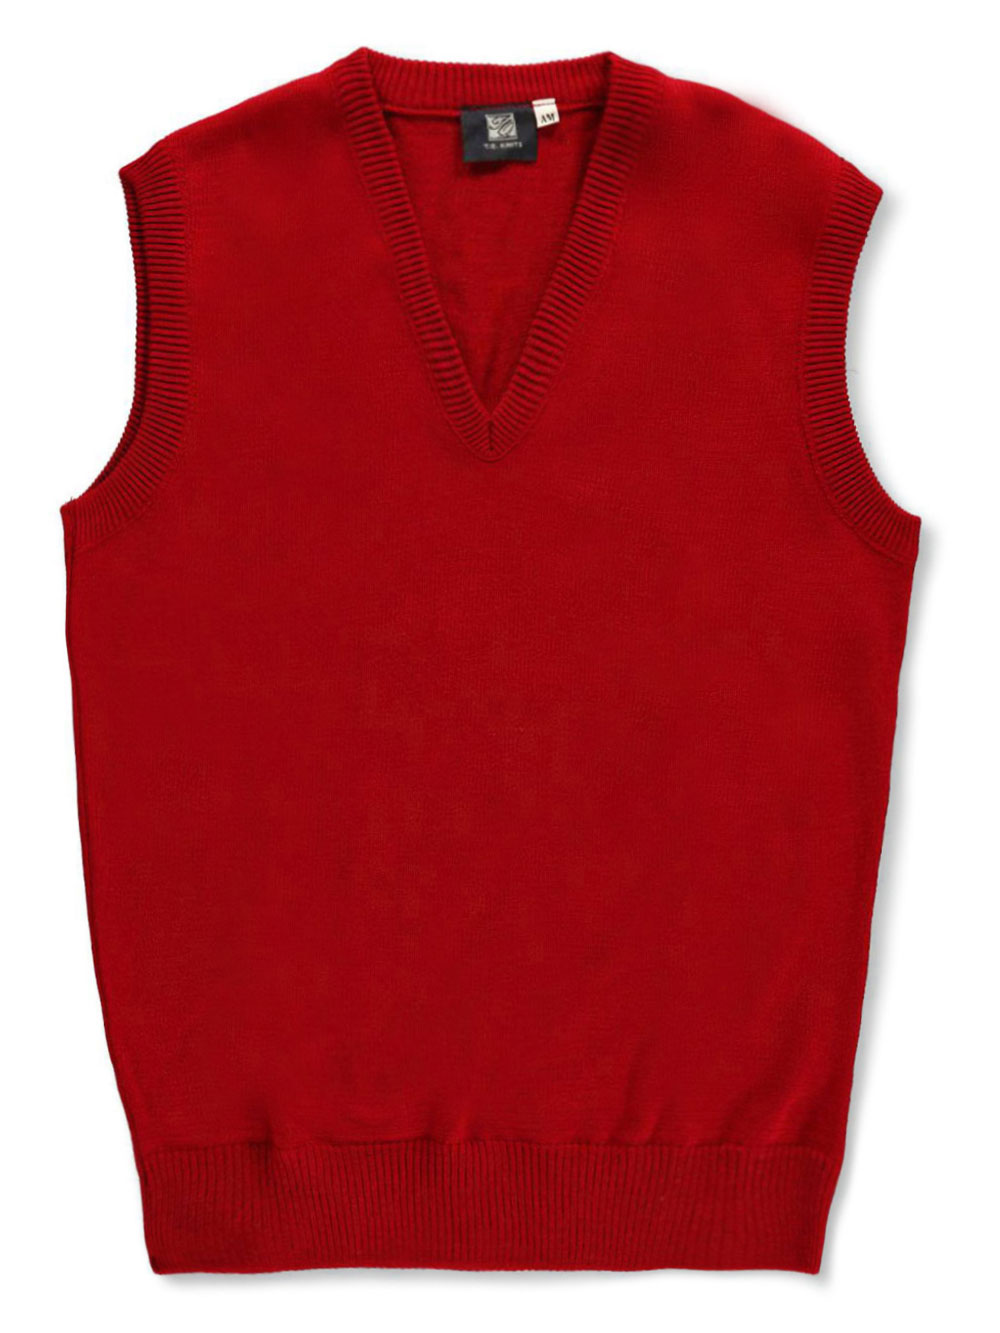 Image of T.Q. Knits Unisex Sweater Vest Adult Sizes S  XXL  red l